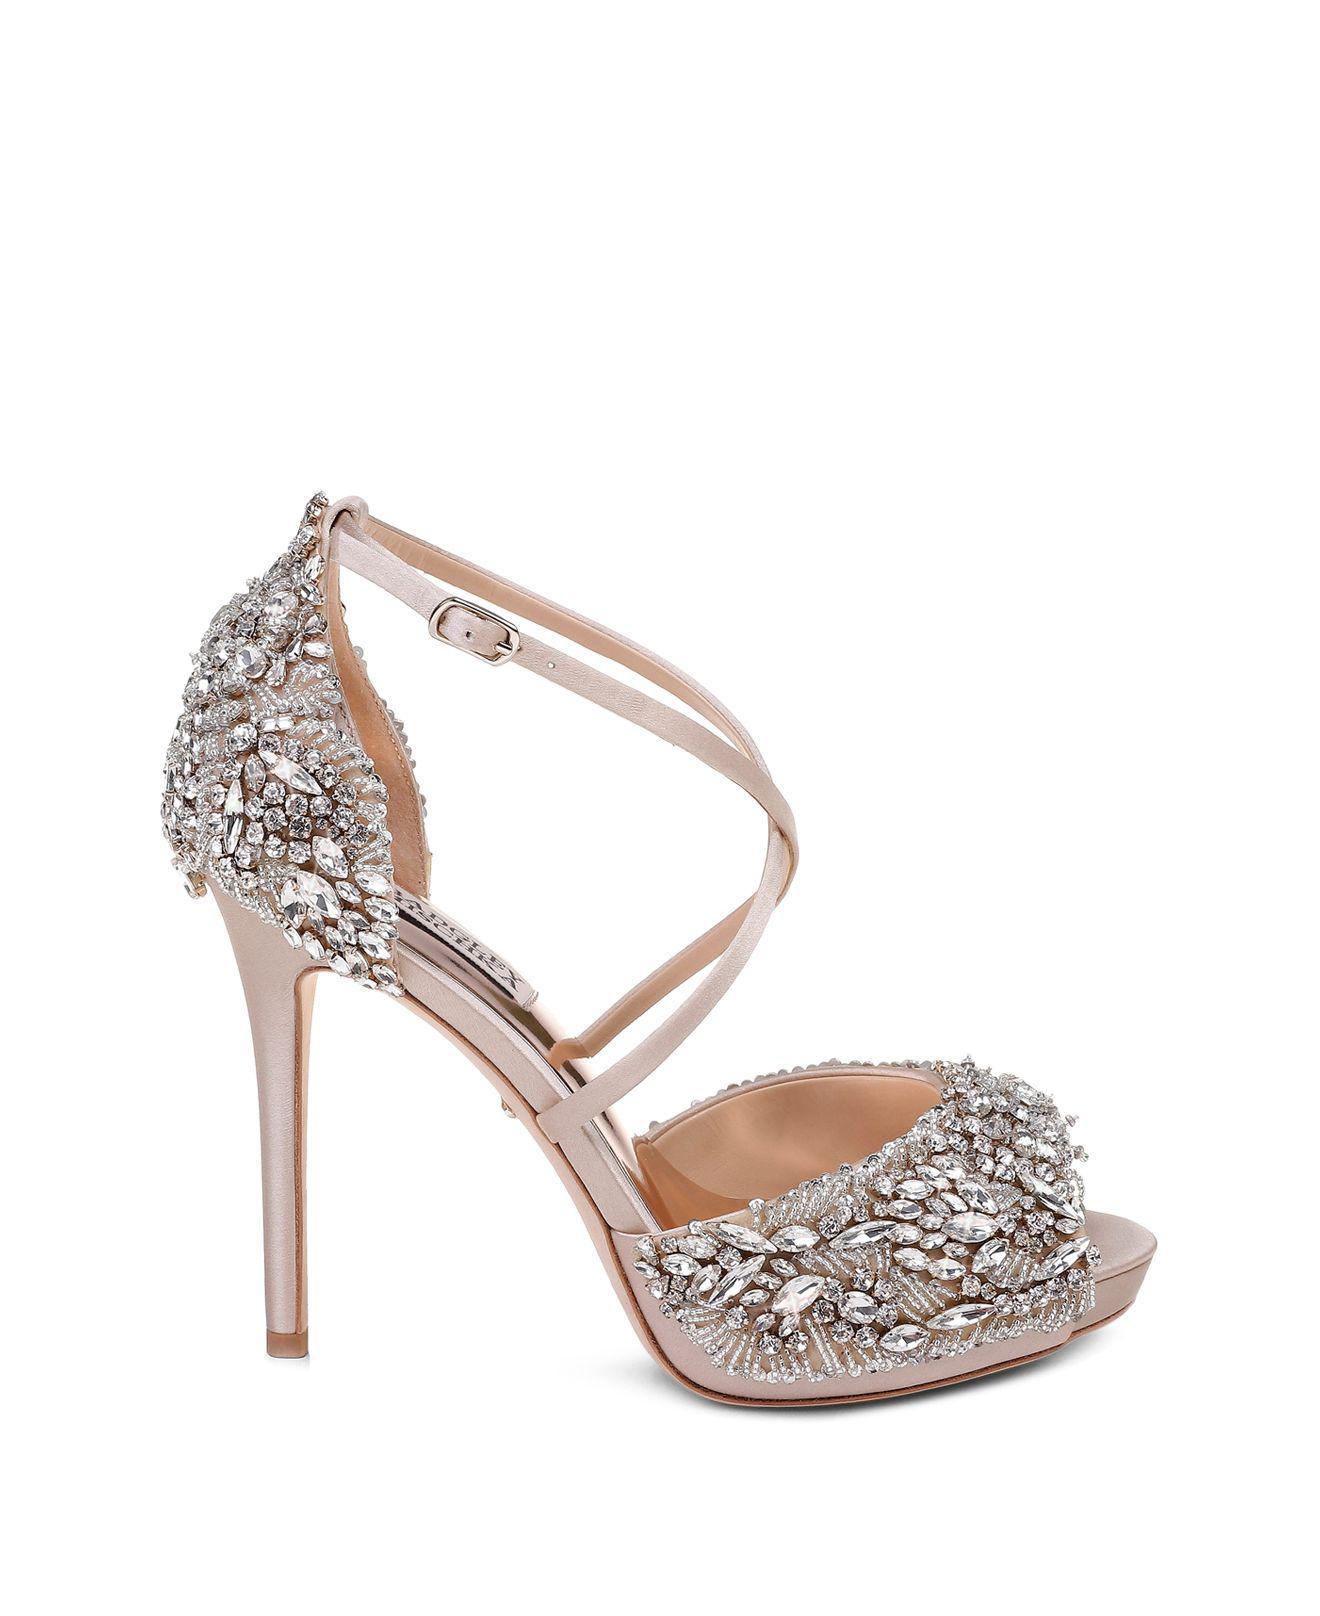 Badgley Mischka Women's Hyper Embellished Satin Platform High-Heel Sandals m5Q5uY5SM